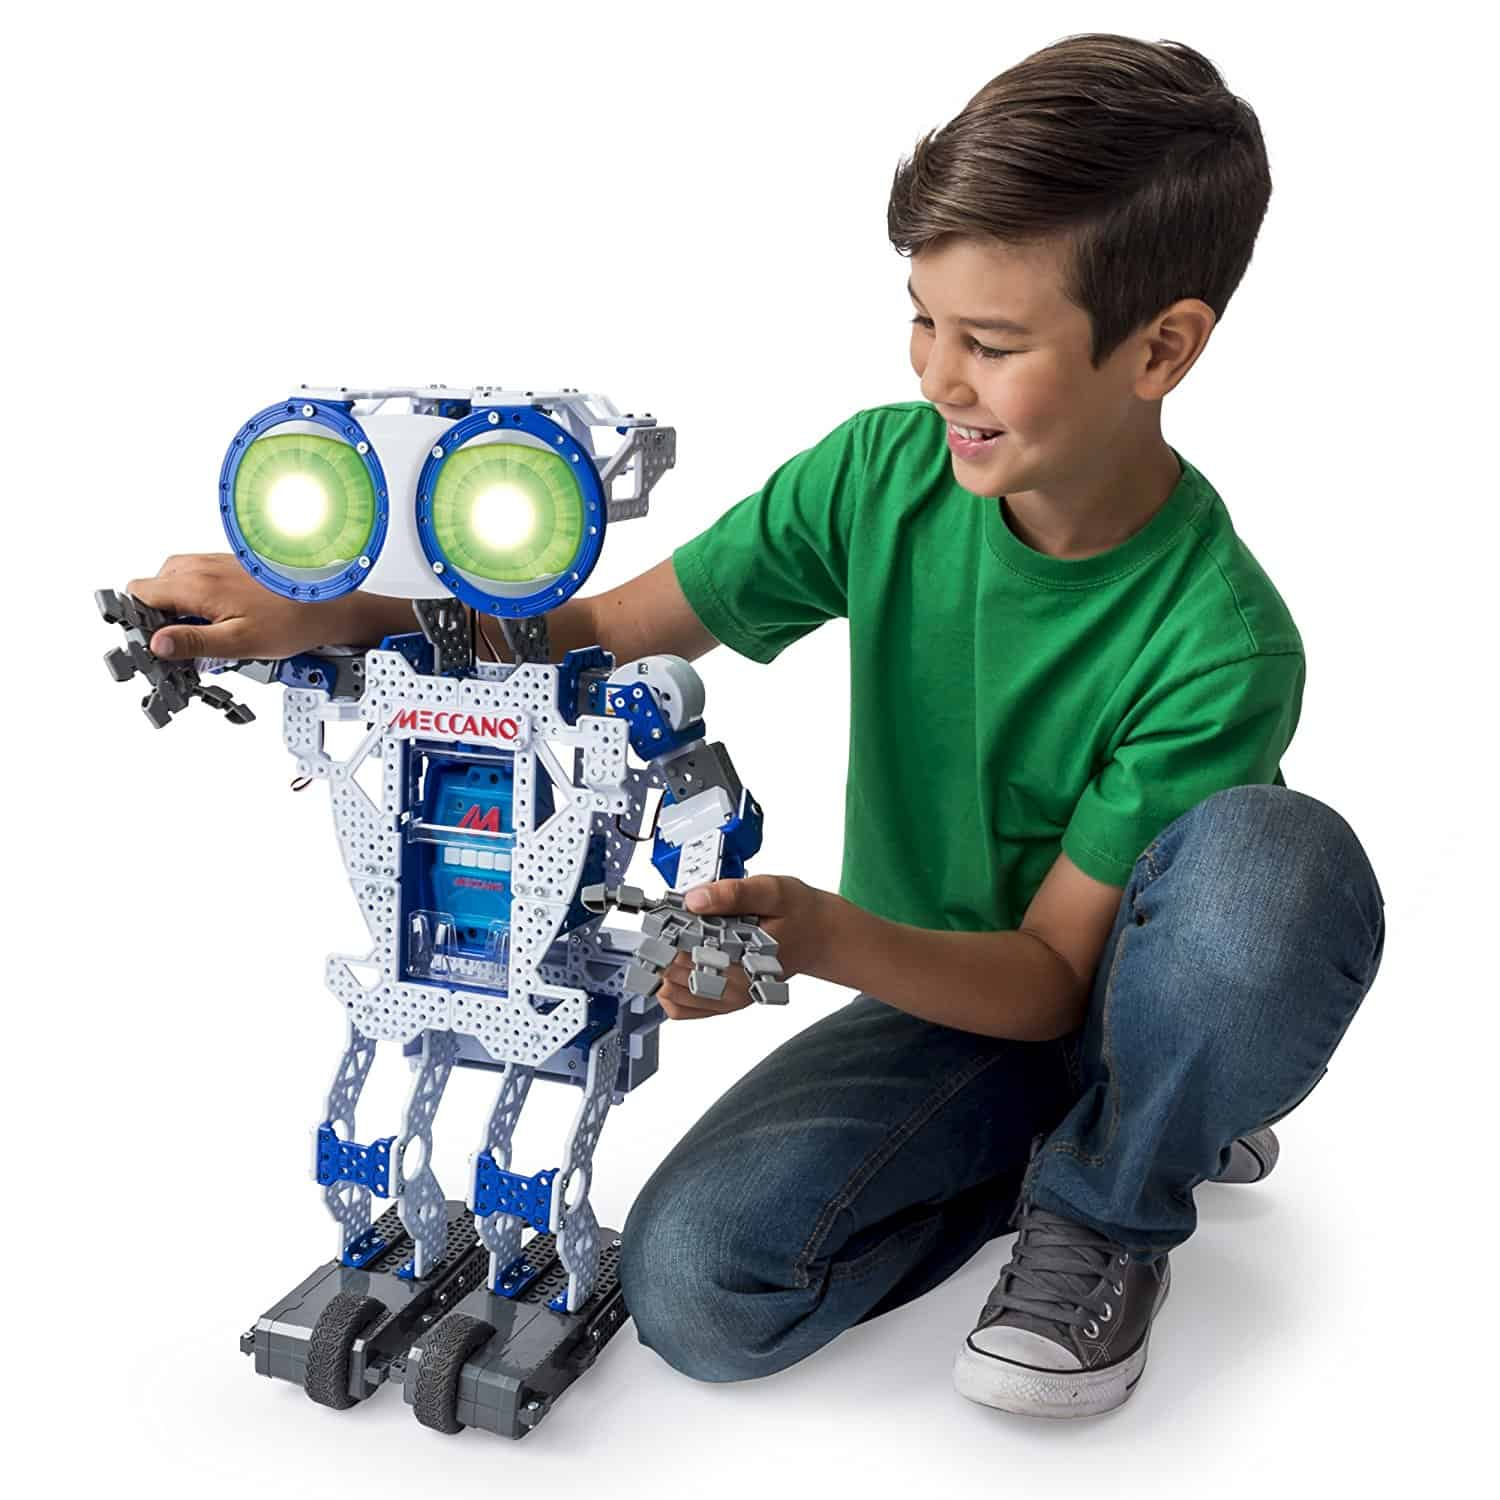 Engineering Toys For Boys : Top best stem toys for boys coding engineering